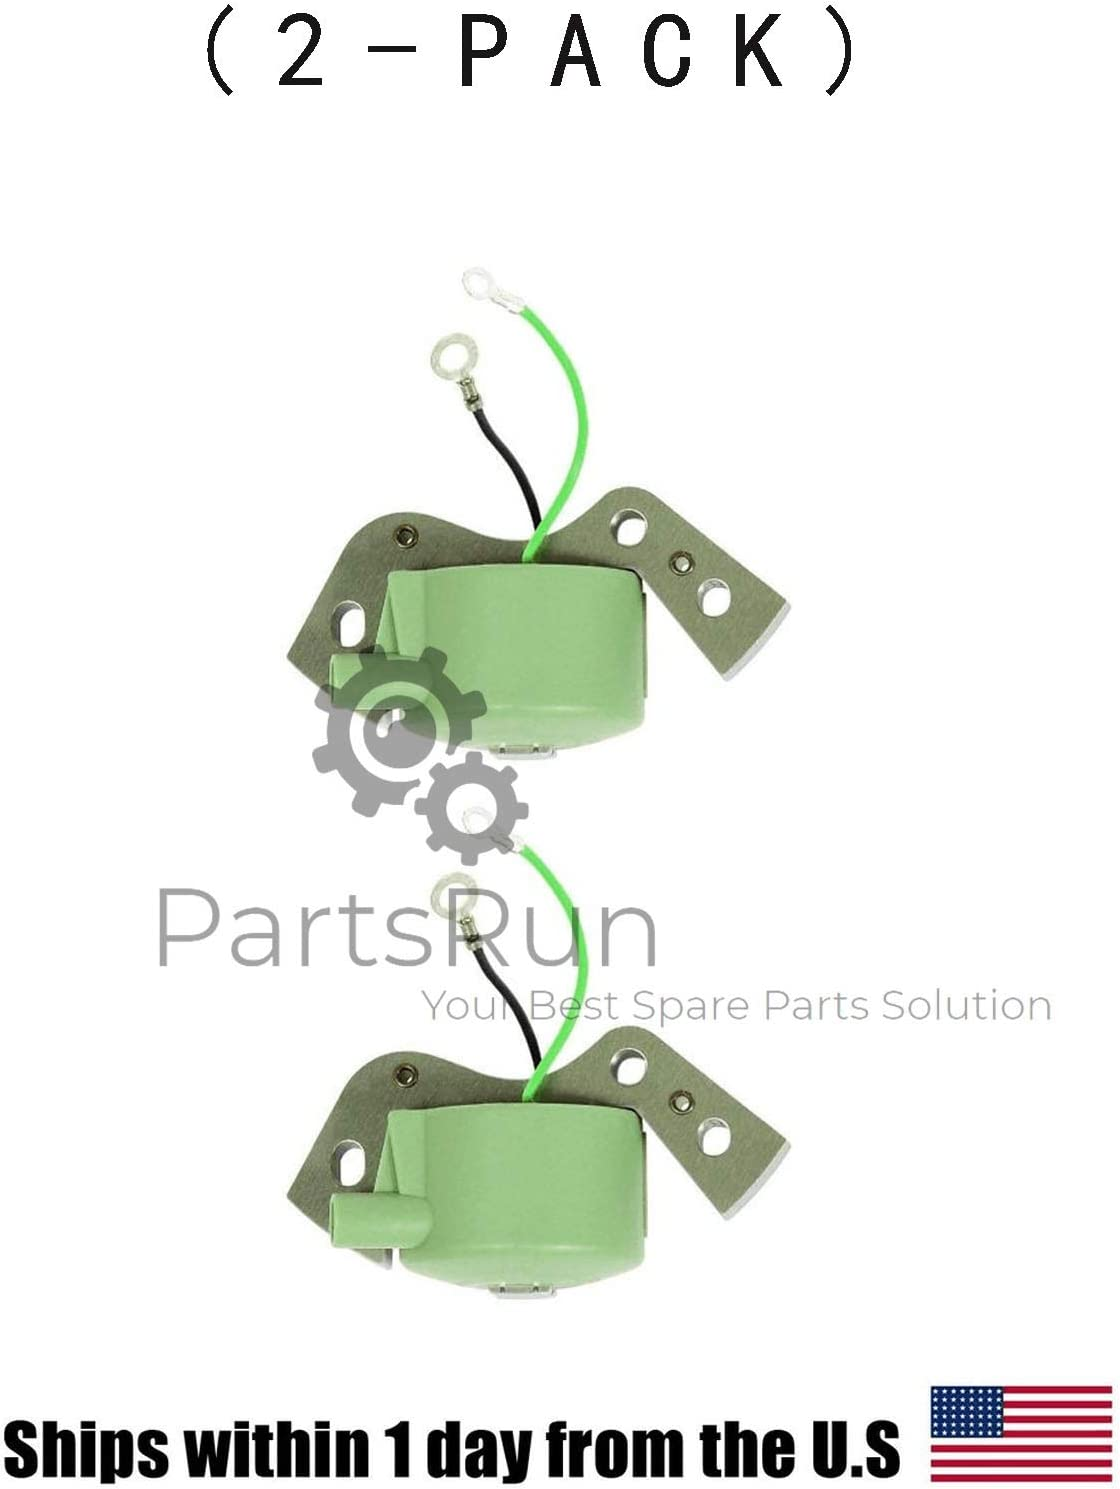 PARTSRUN High Performance 2PCS Igintion Coil for OMC Johnson Evinrude Outboard 582995 584477 580416 Replaces Sierra 18-5181 GLM Mallory CDI 183-4477 Fits Lawnboy 580184,ZF089V